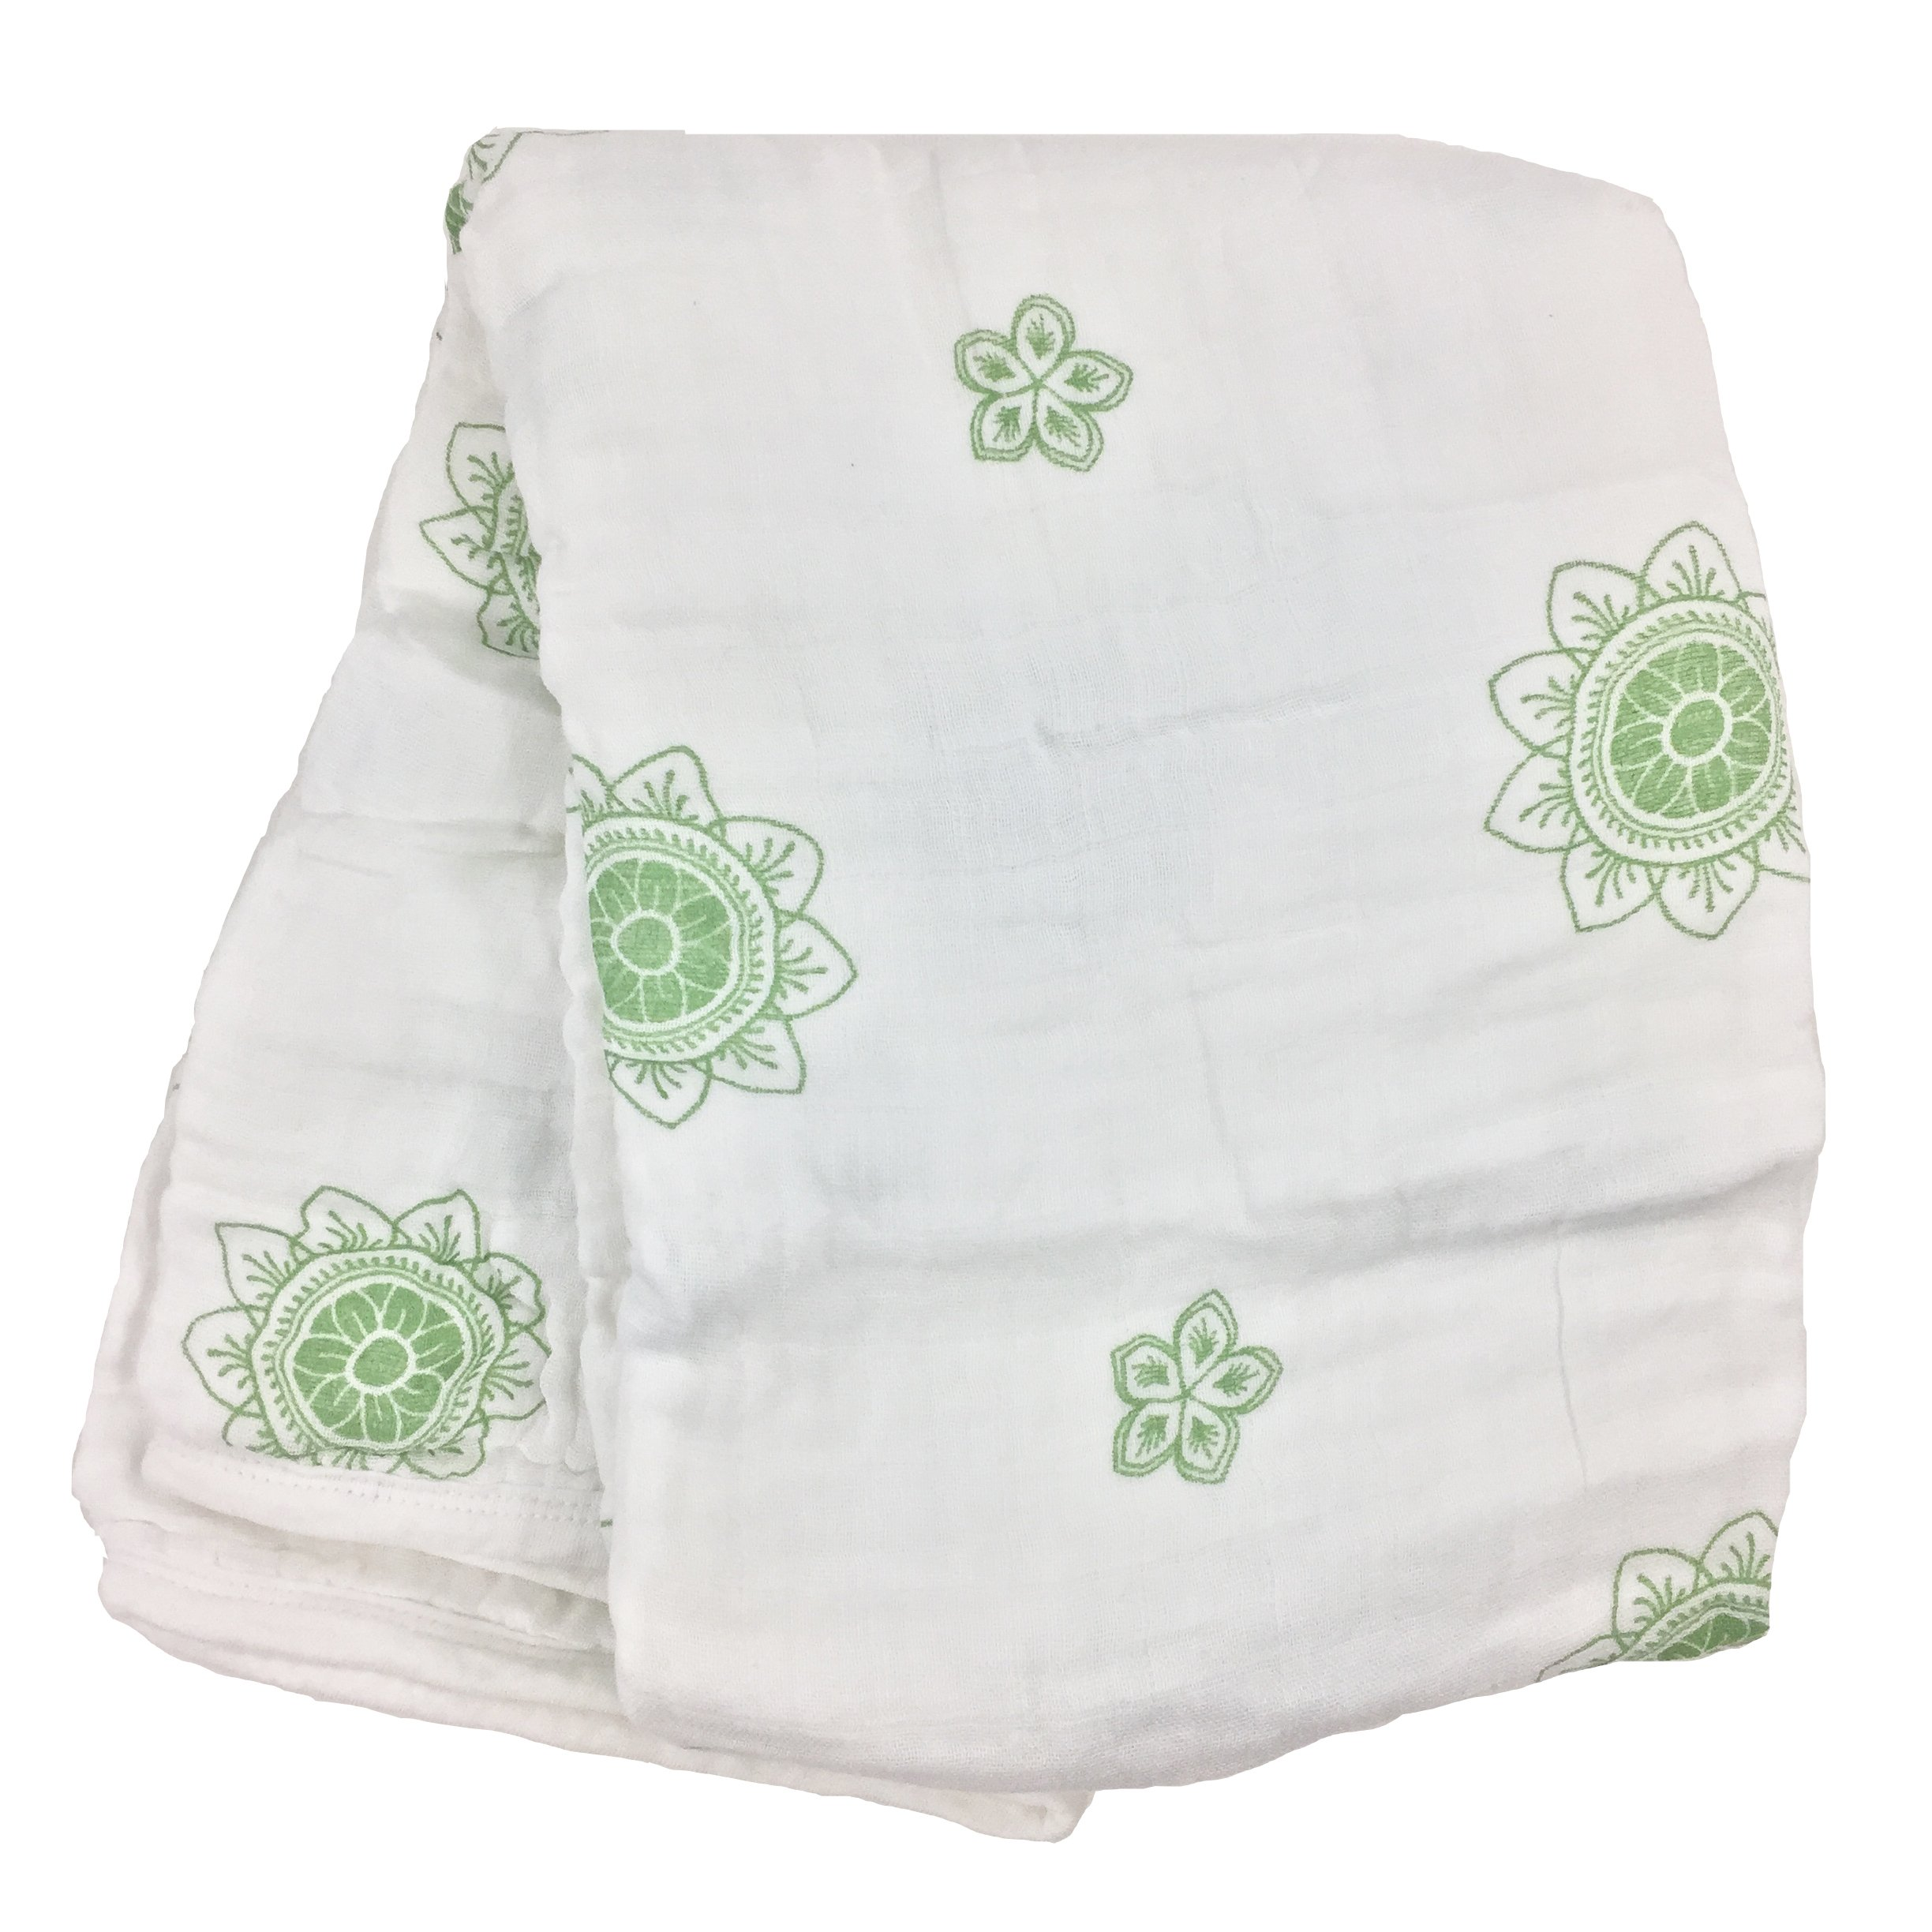 Bambino Land Zen Flower Green Double Layer Muslin Swaddling Blanket, Made from Organic Cotton by Bambino Land